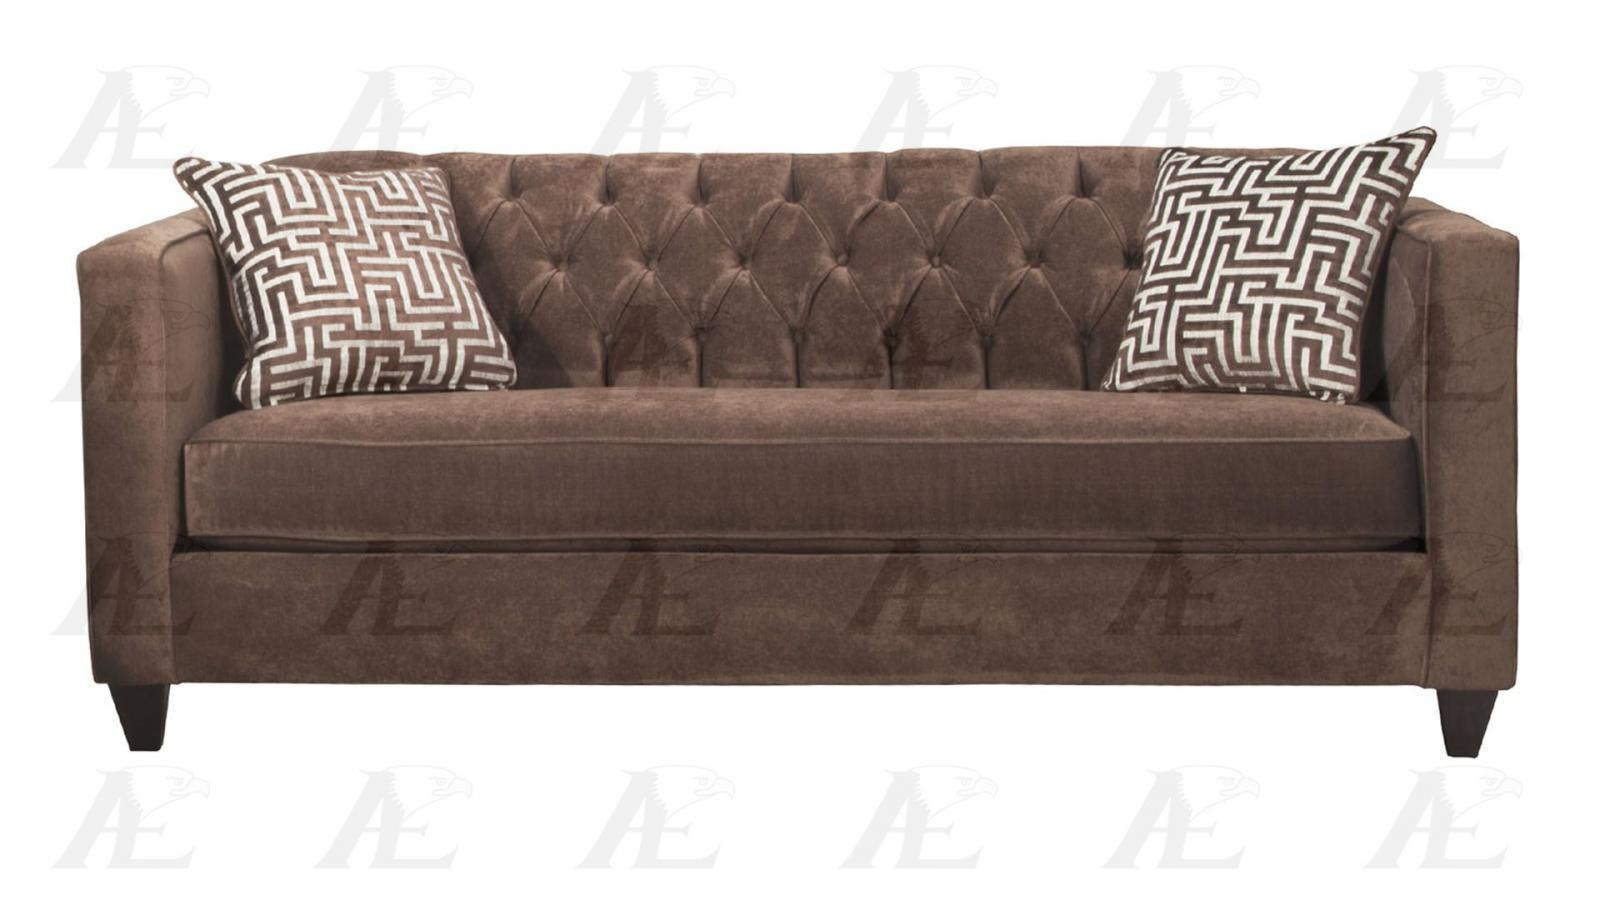 American eagle ae2602 br brown fabric tufted sofa for Brown fabric couch